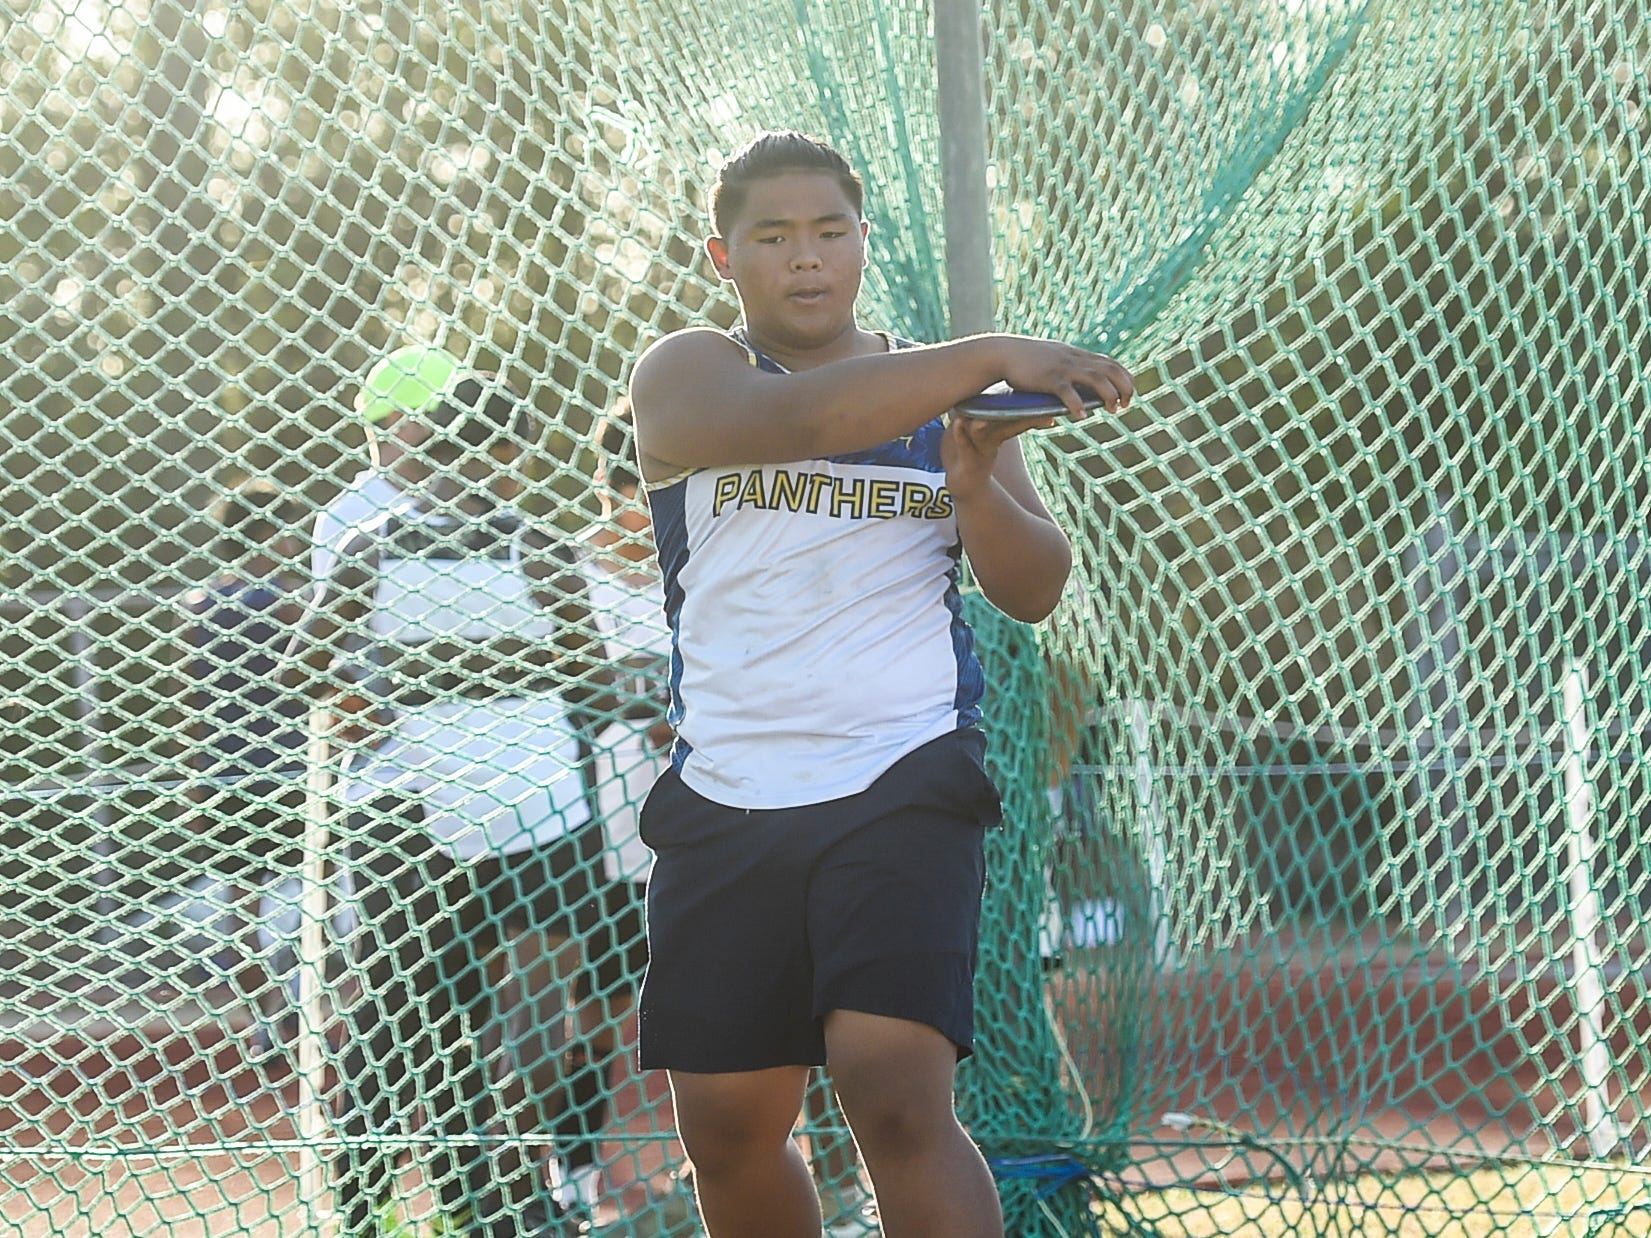 Guam High's Matua Whalen, 15, winds up for his throw in the Discus 1.6kg Varsity during a IIAAG Track and Field meet at John F. Kennedy Ramsey Field in Tamuning on May 10, 2019.